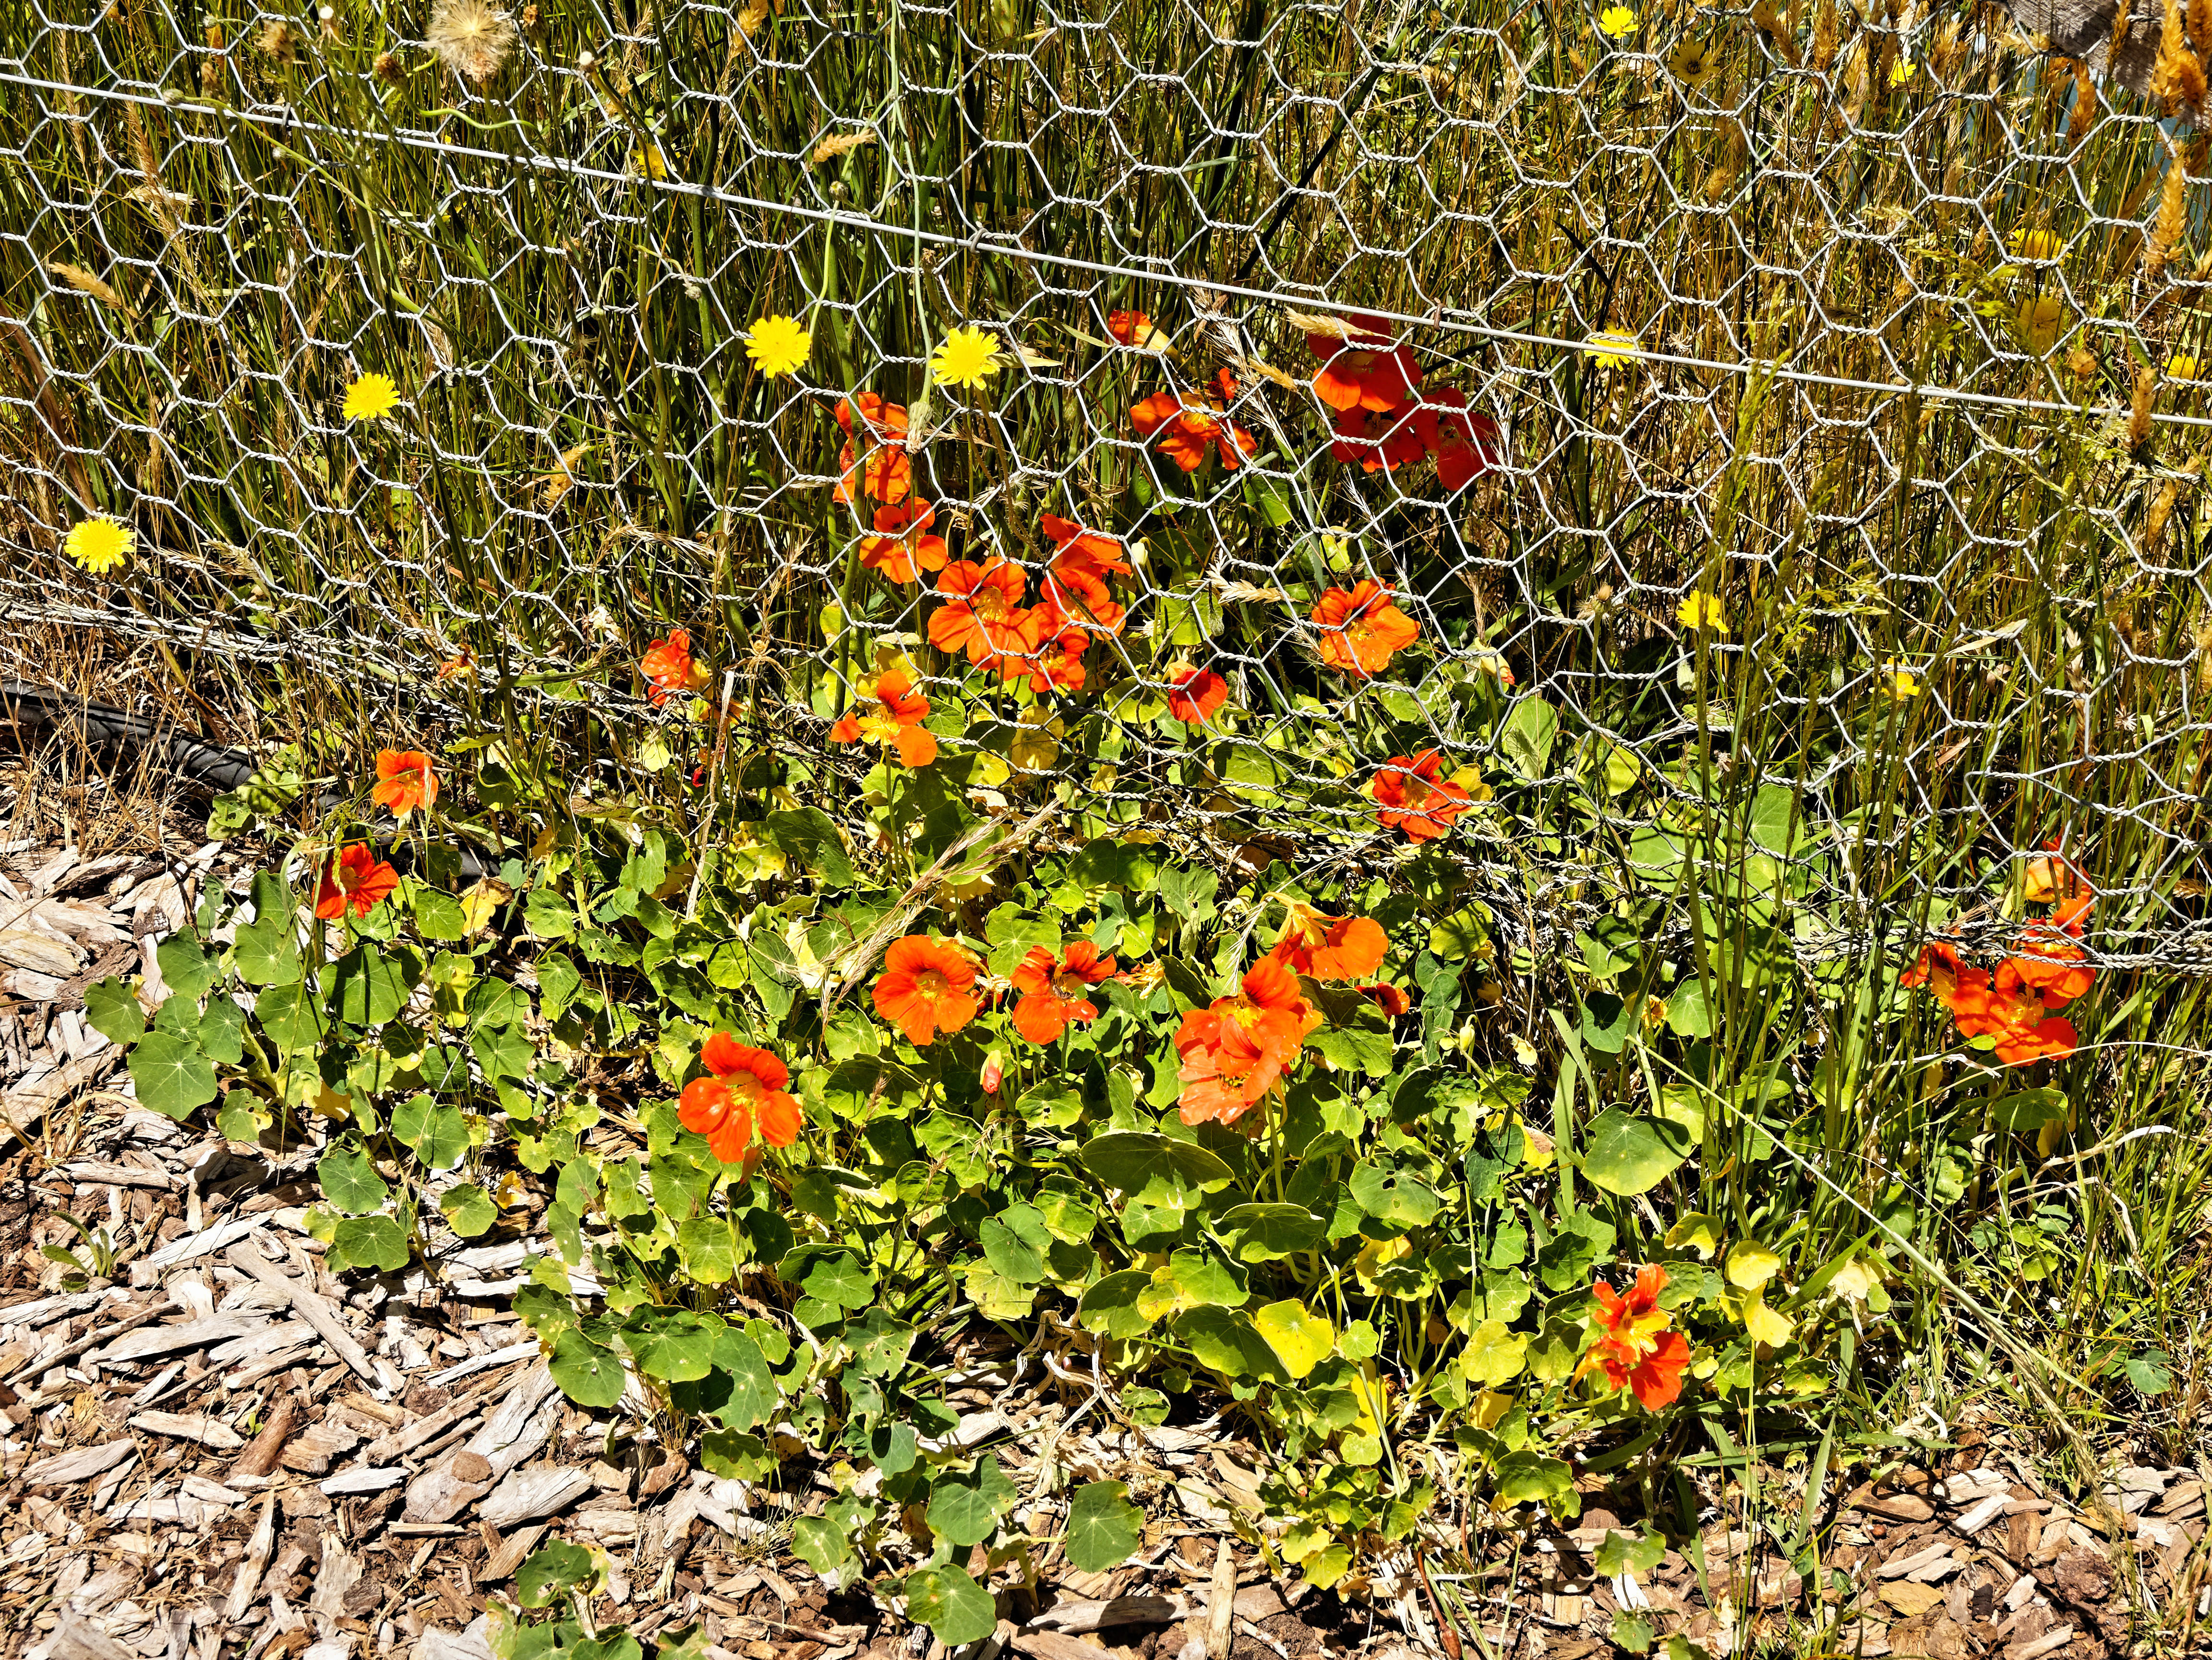 This should be Tropaeolum.jpeg.  Is it missing?